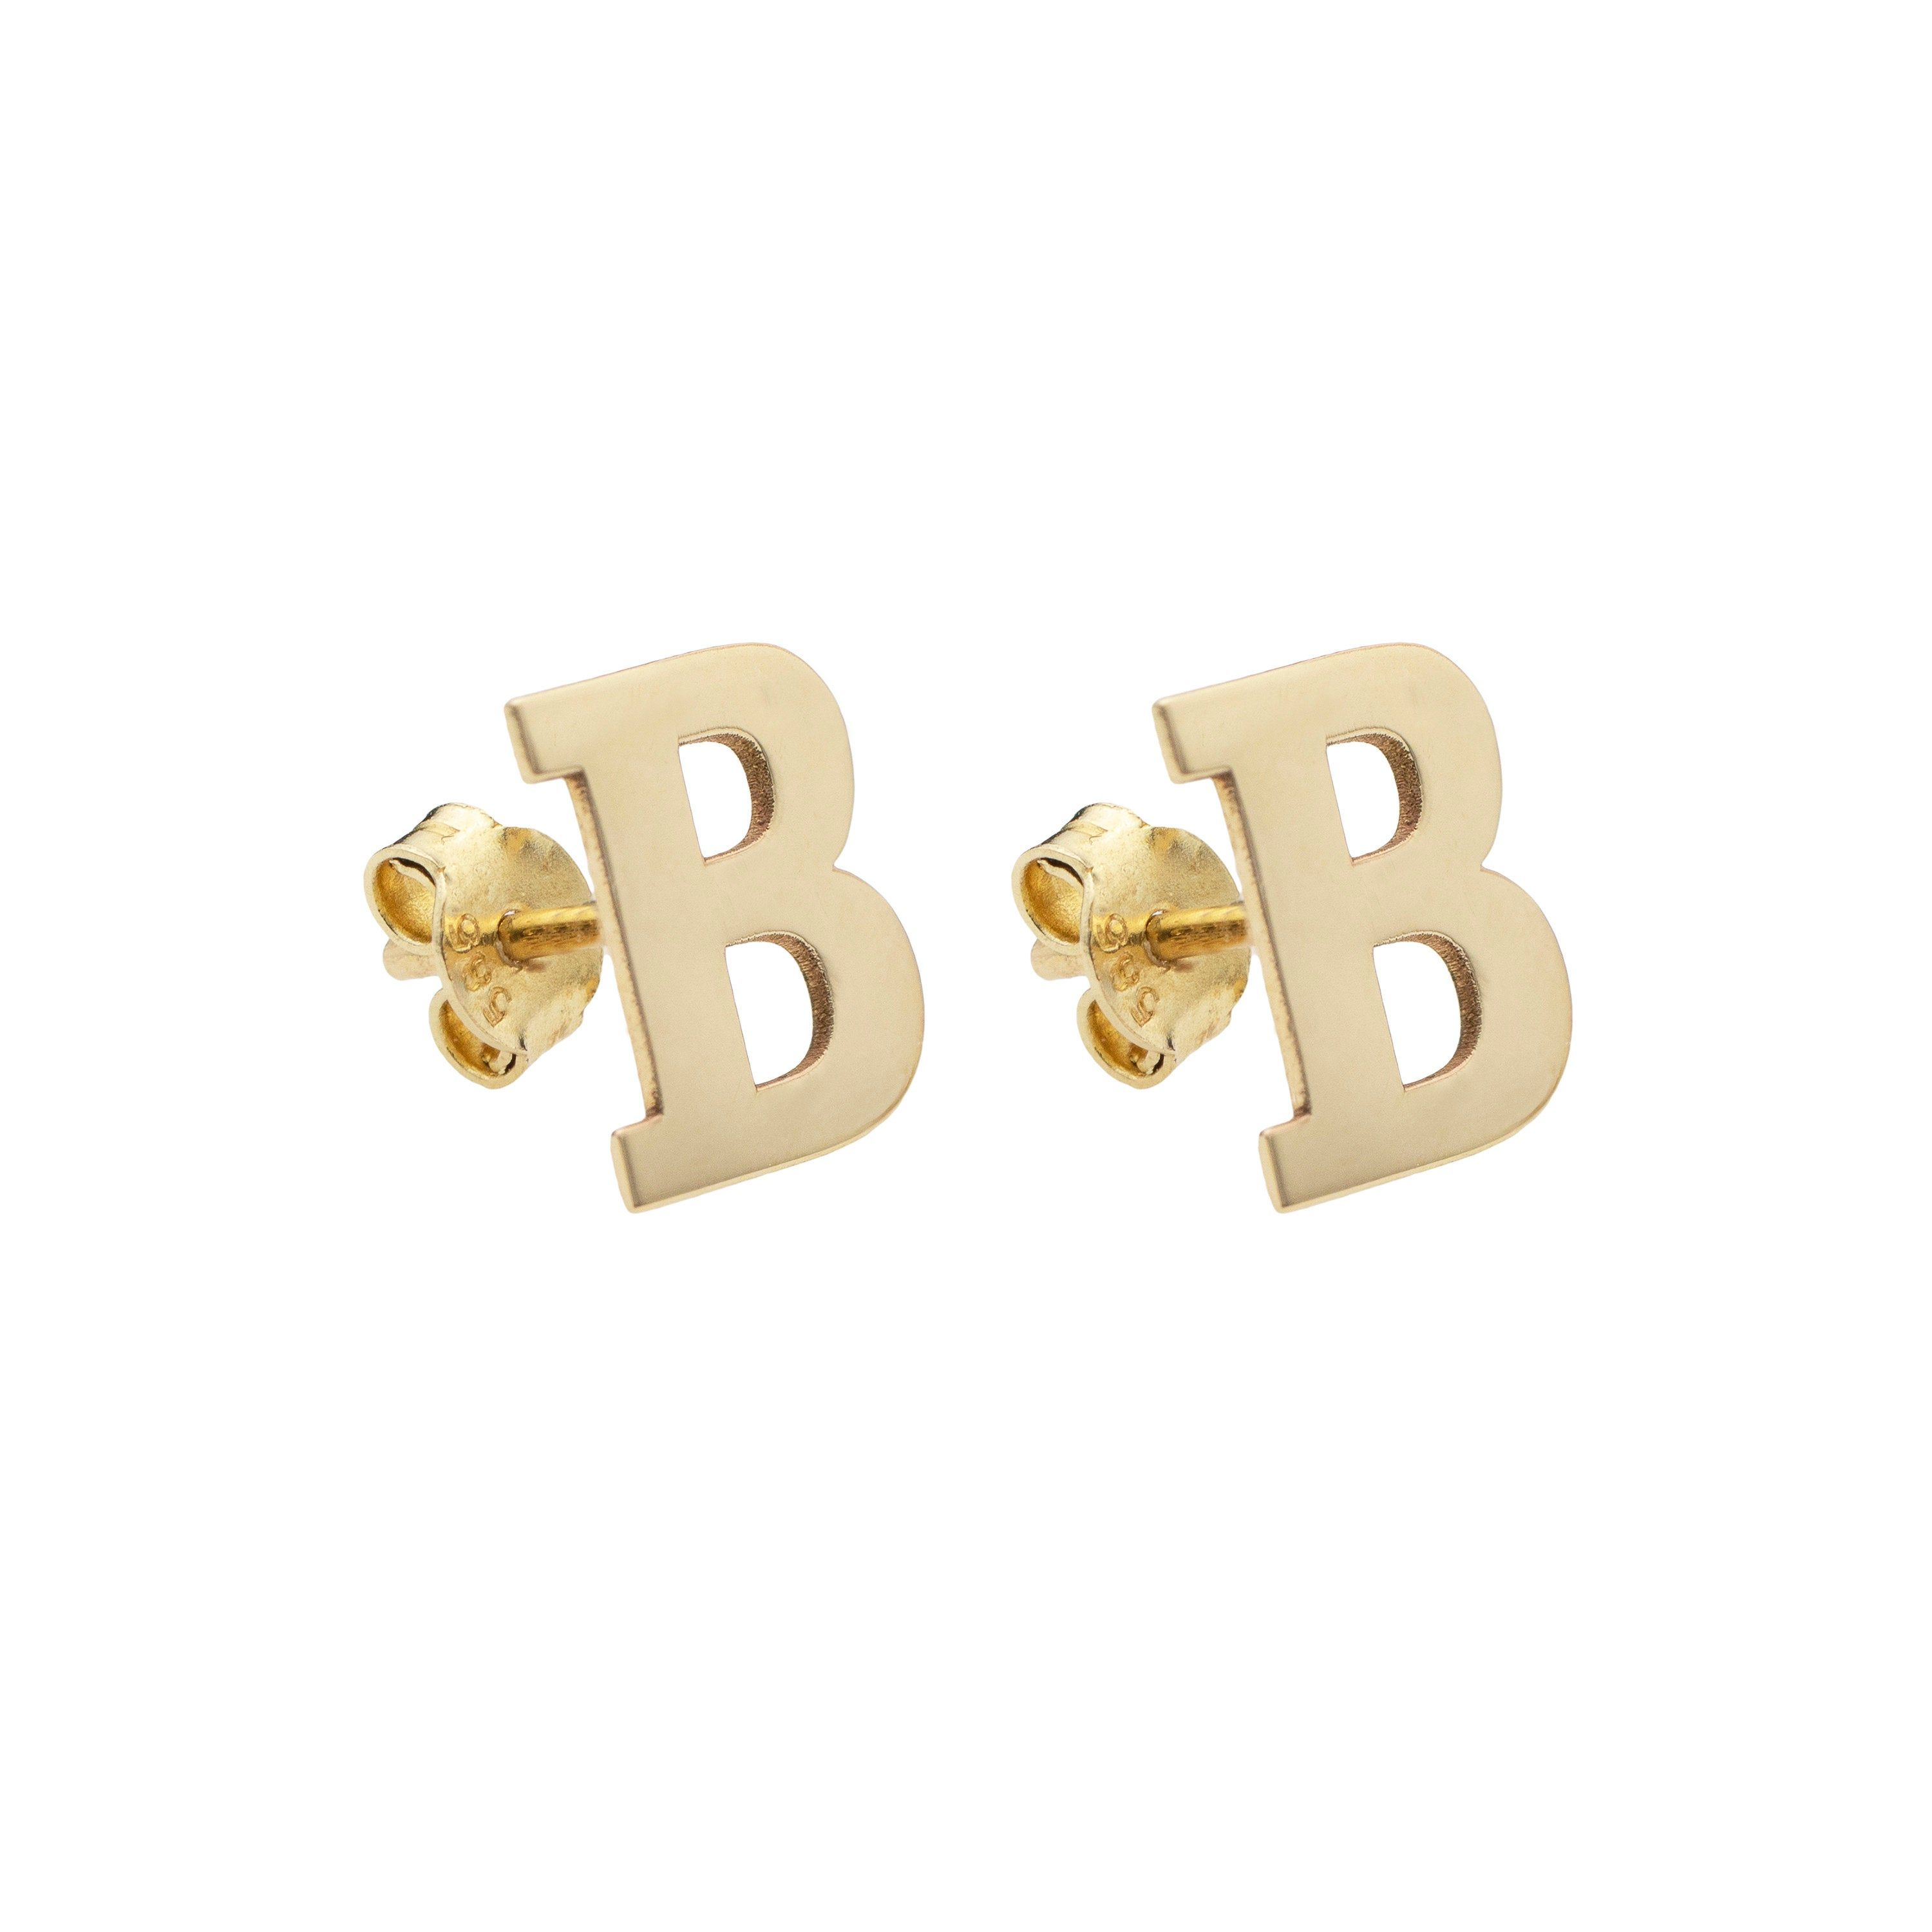 14k Solid Gold Earrings Gold Initial Stud Earrings Alphabet Etsy In 2020 Initial Earrings Studs Gold Initial Solid Gold Earrings